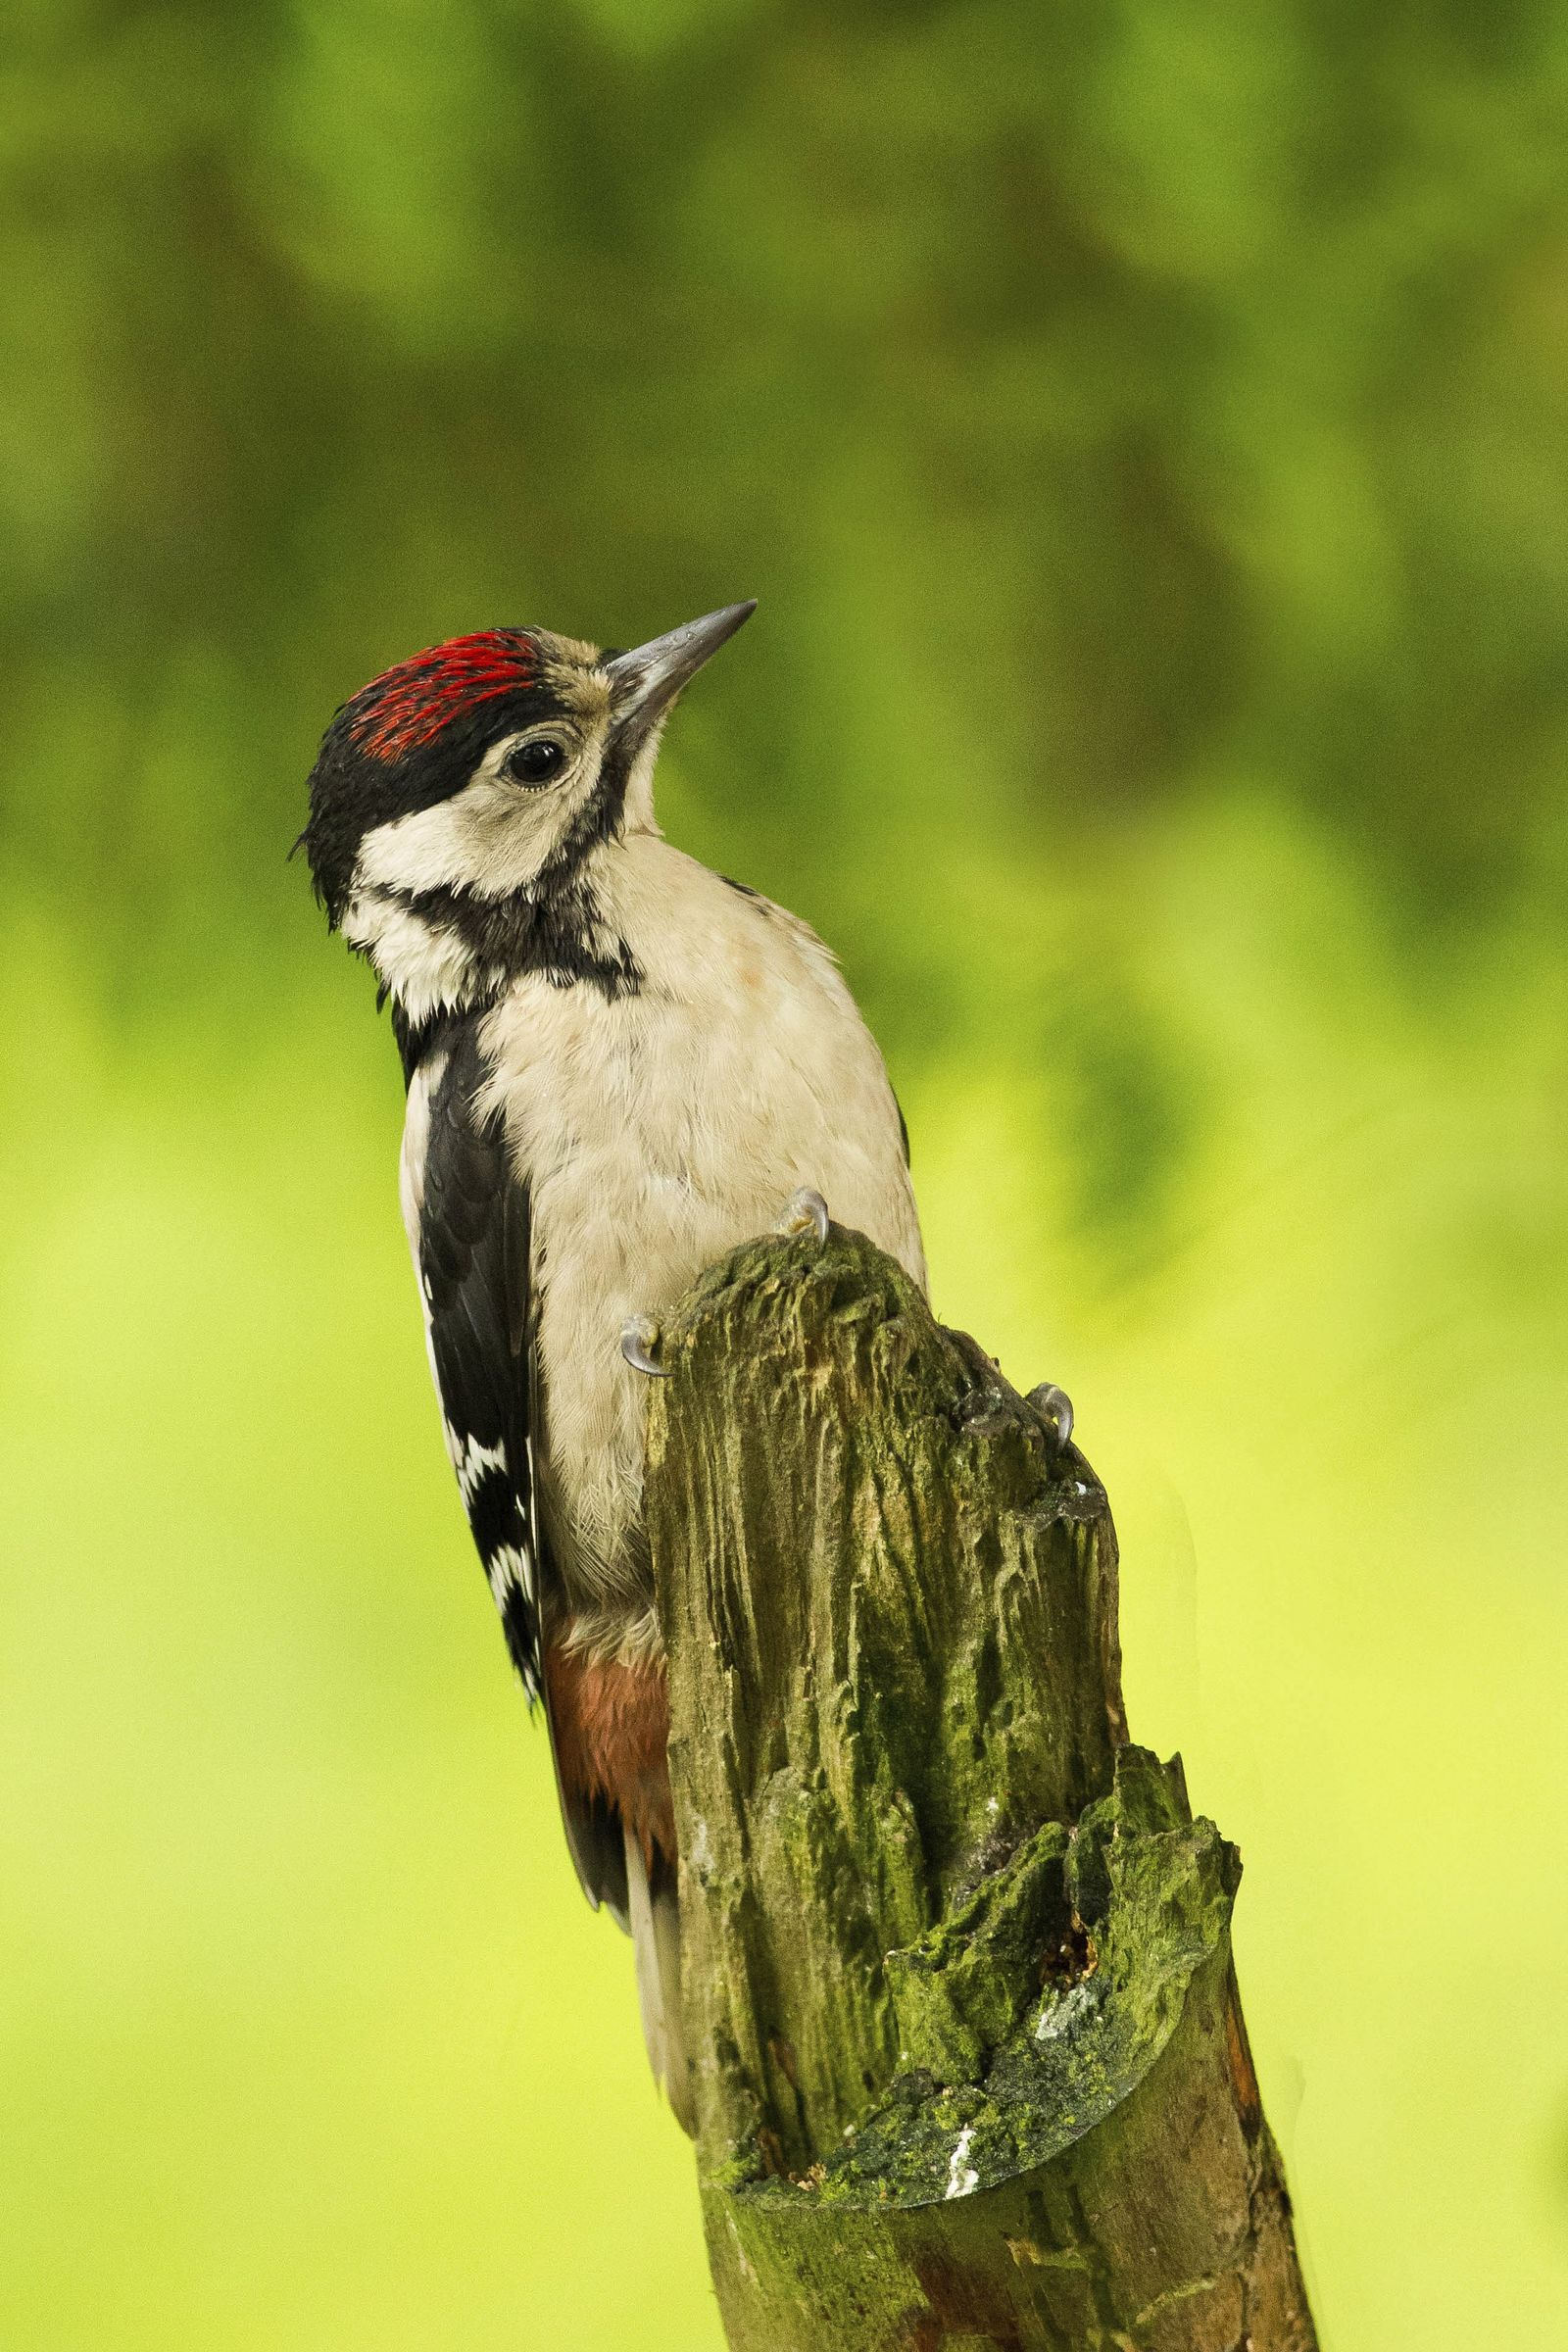 Juvenile great spotted woodpeckers have a red crown.